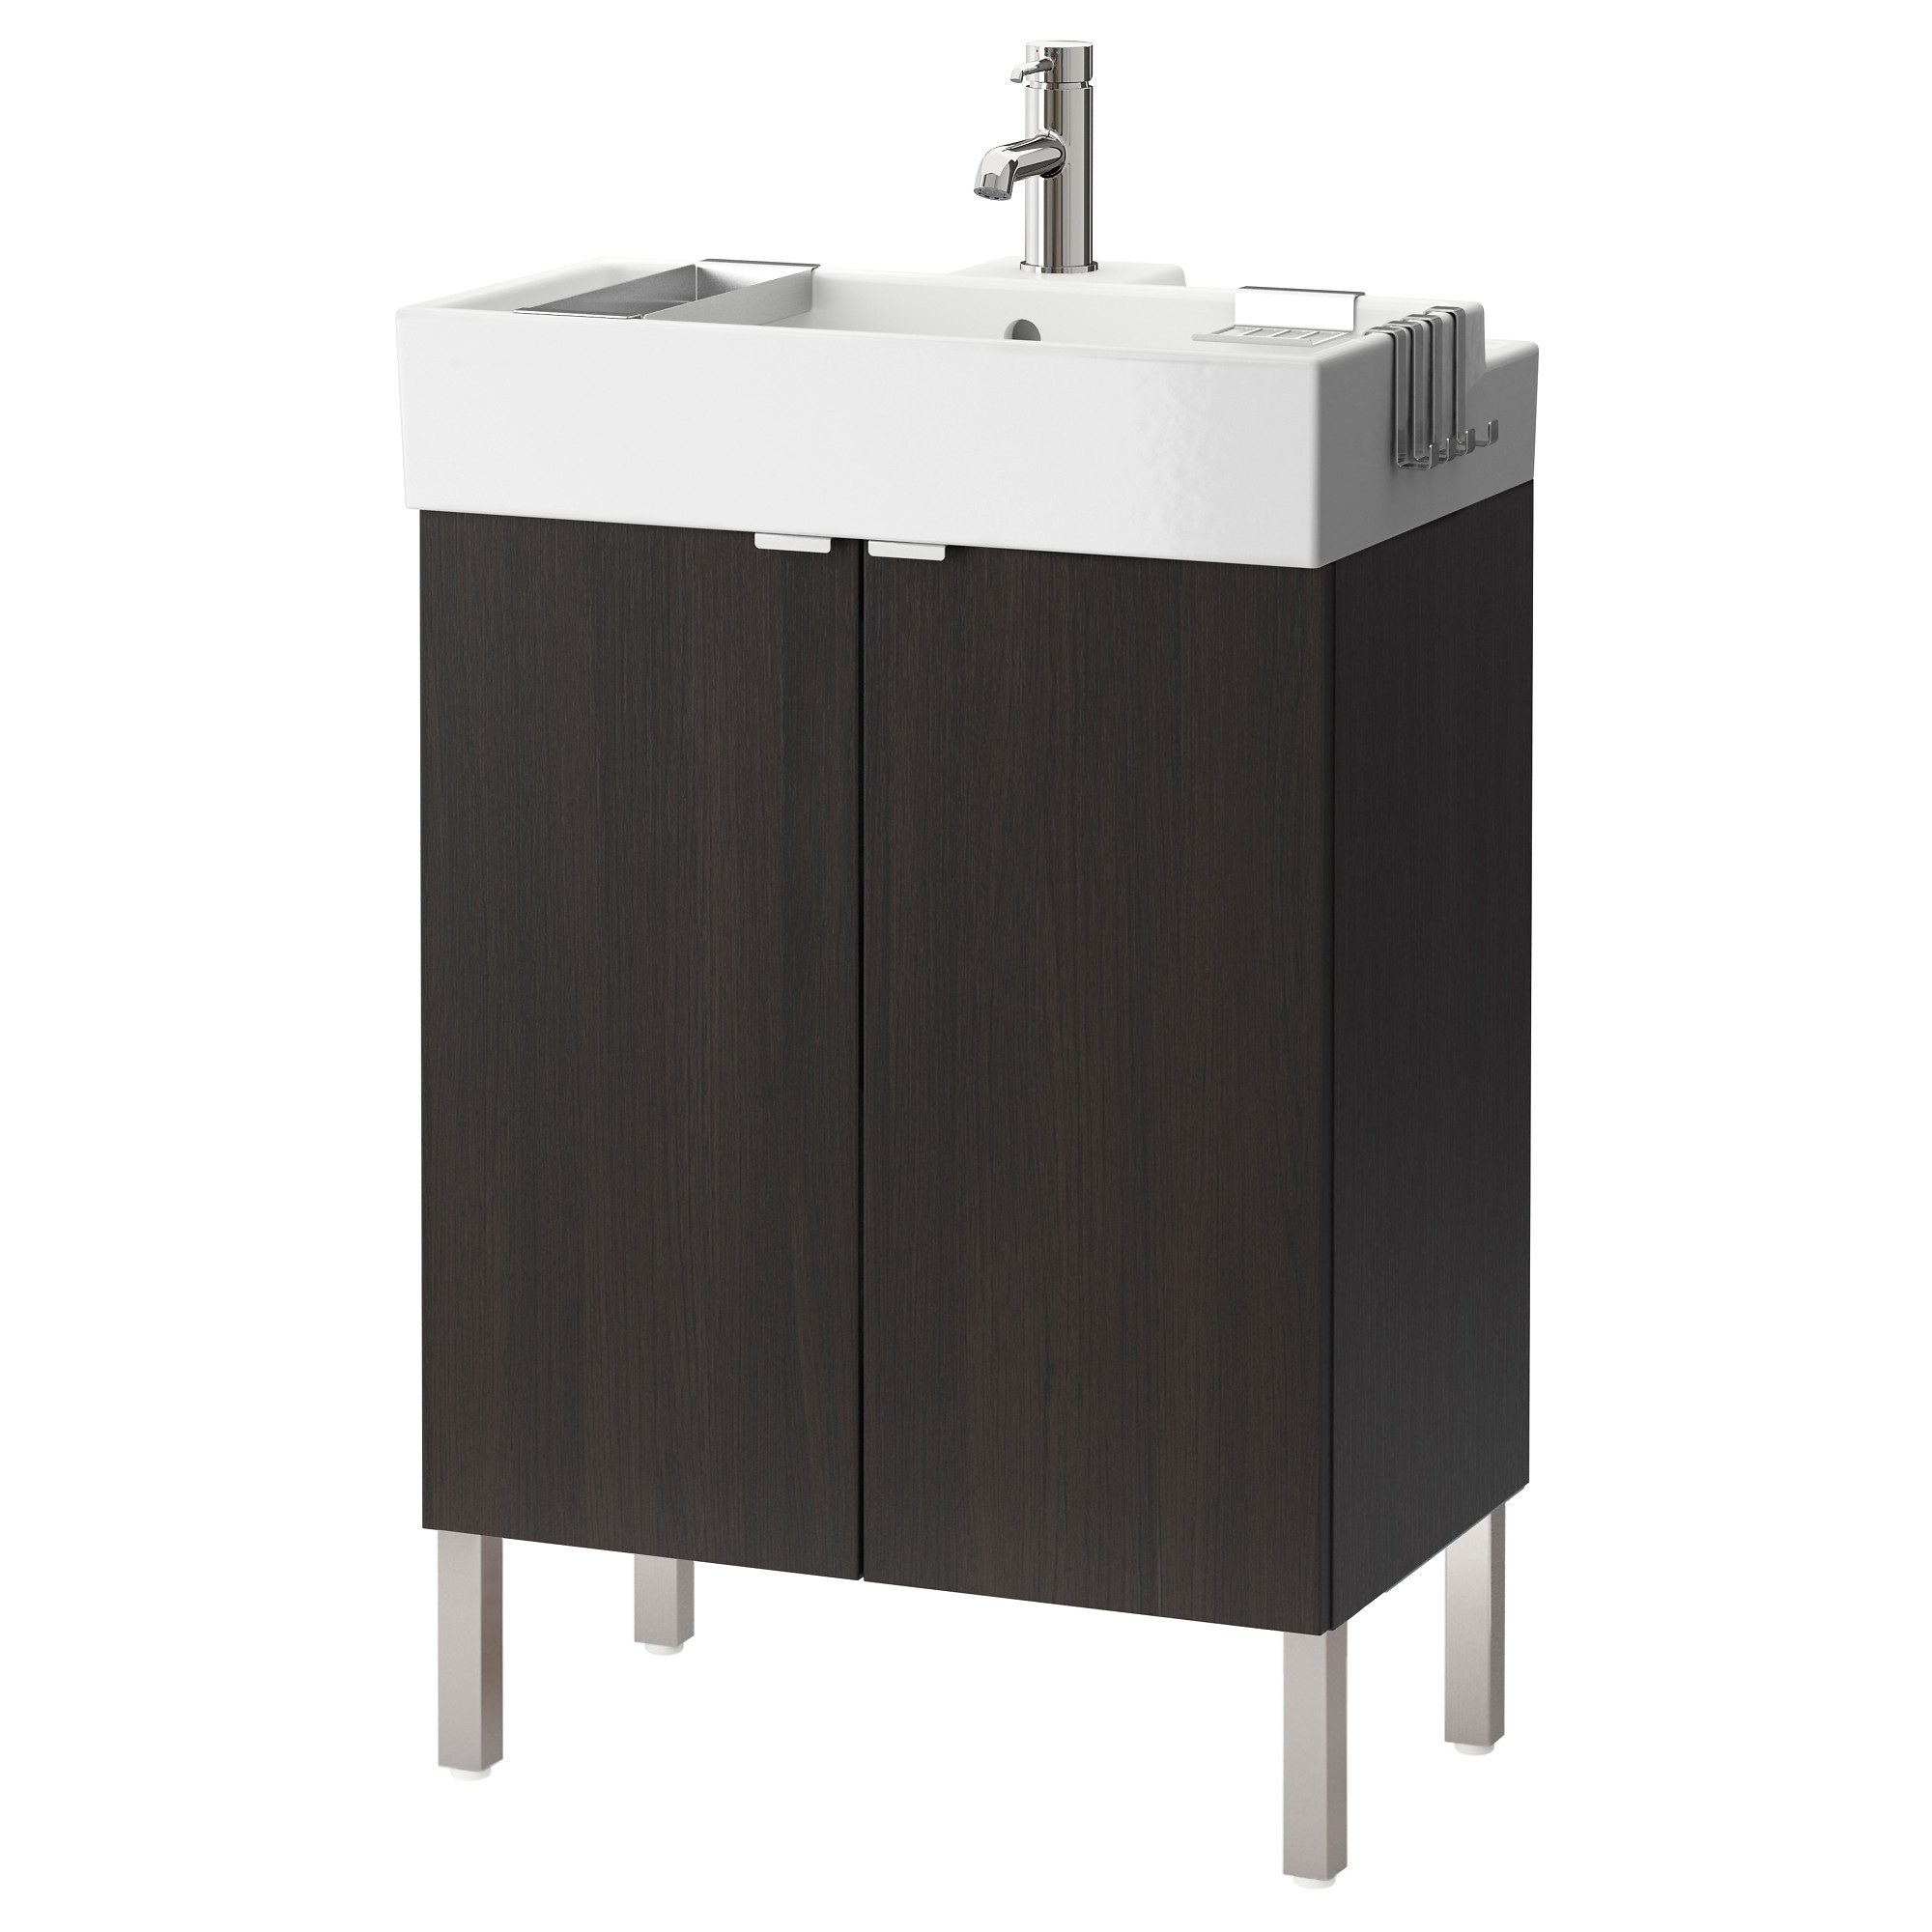 Bathroom sink cabinets white - Lill Ngen Sink Cabinet With 2 Doors Black Brown Width 23 5 8